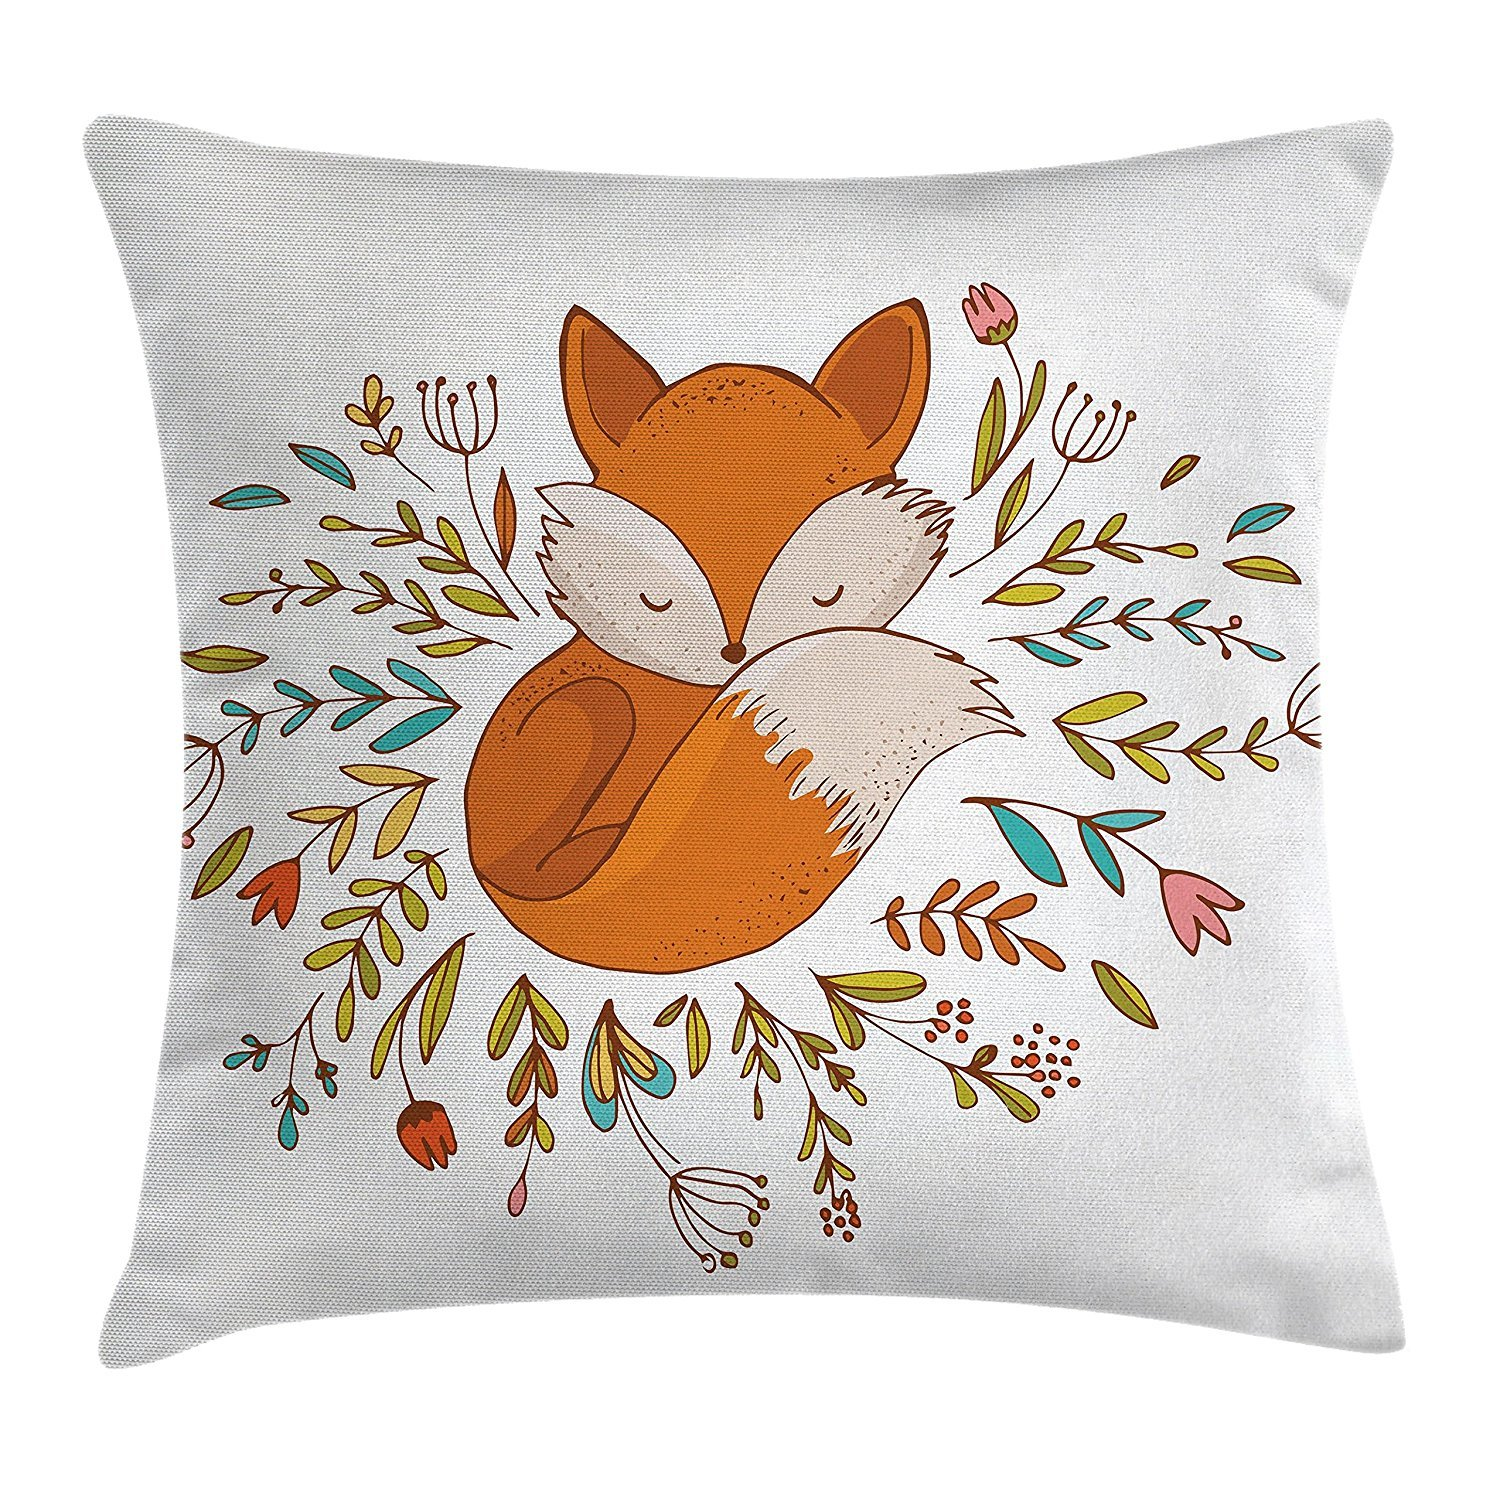 Cartoon Throw Pillow Cushion Cover, Cute Baby Fox Sleeping in a Floral Made Bed Circle Art Print, Decorative Square Accent Pillow Case, 18 X 18 inches, Dark Orange White Teal Coral Cool pillow